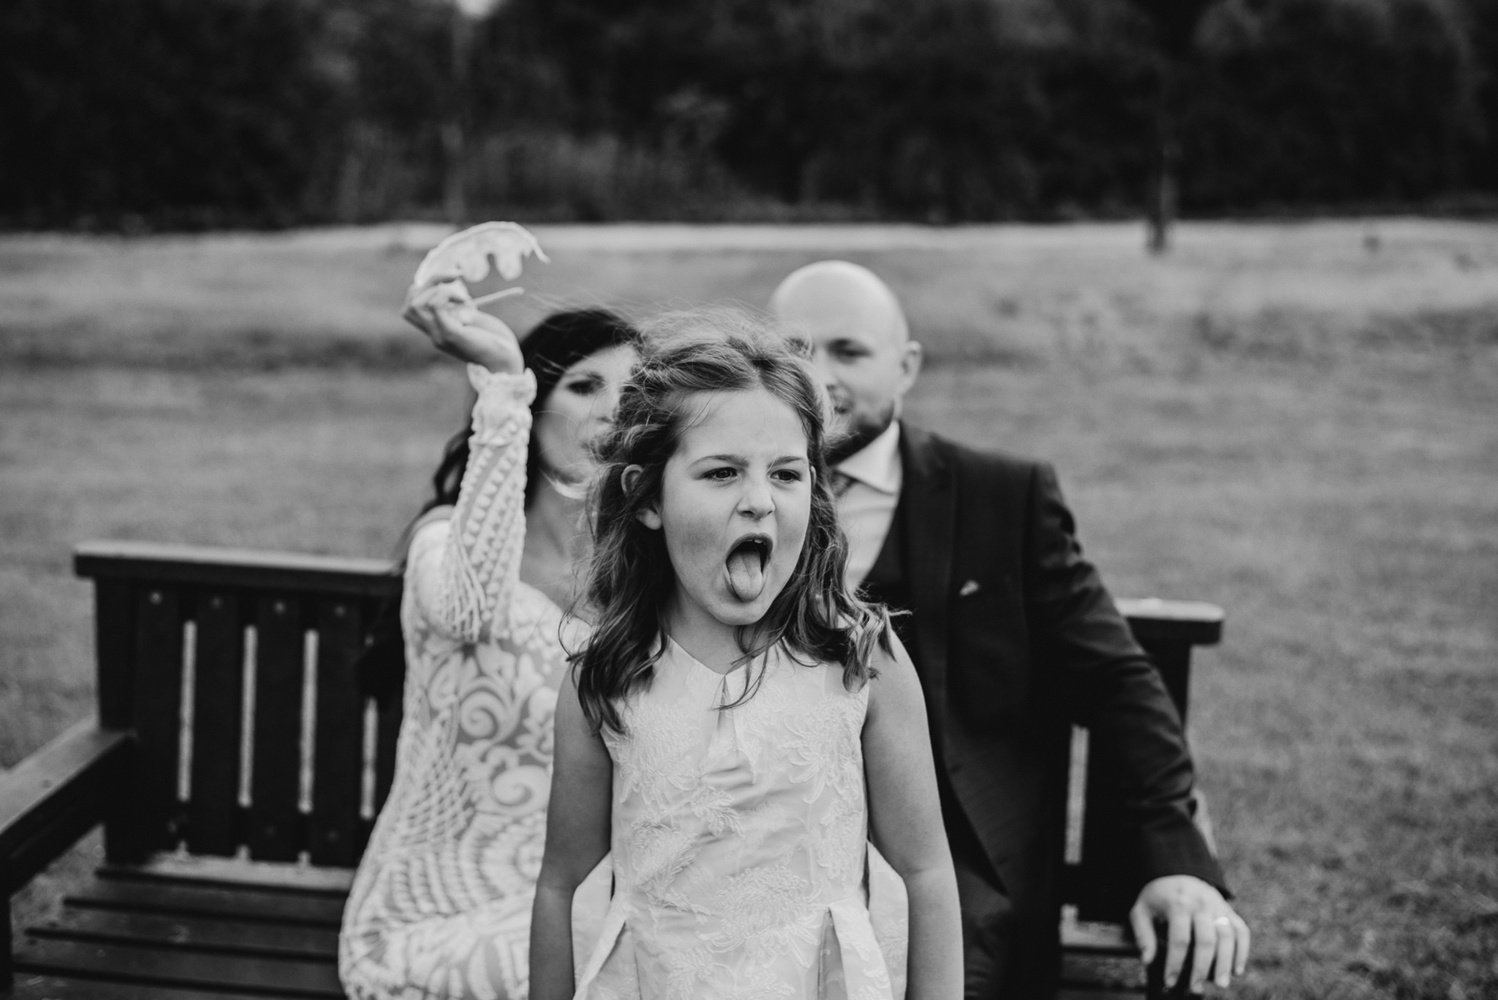 A bride, groom and their daughter in a park